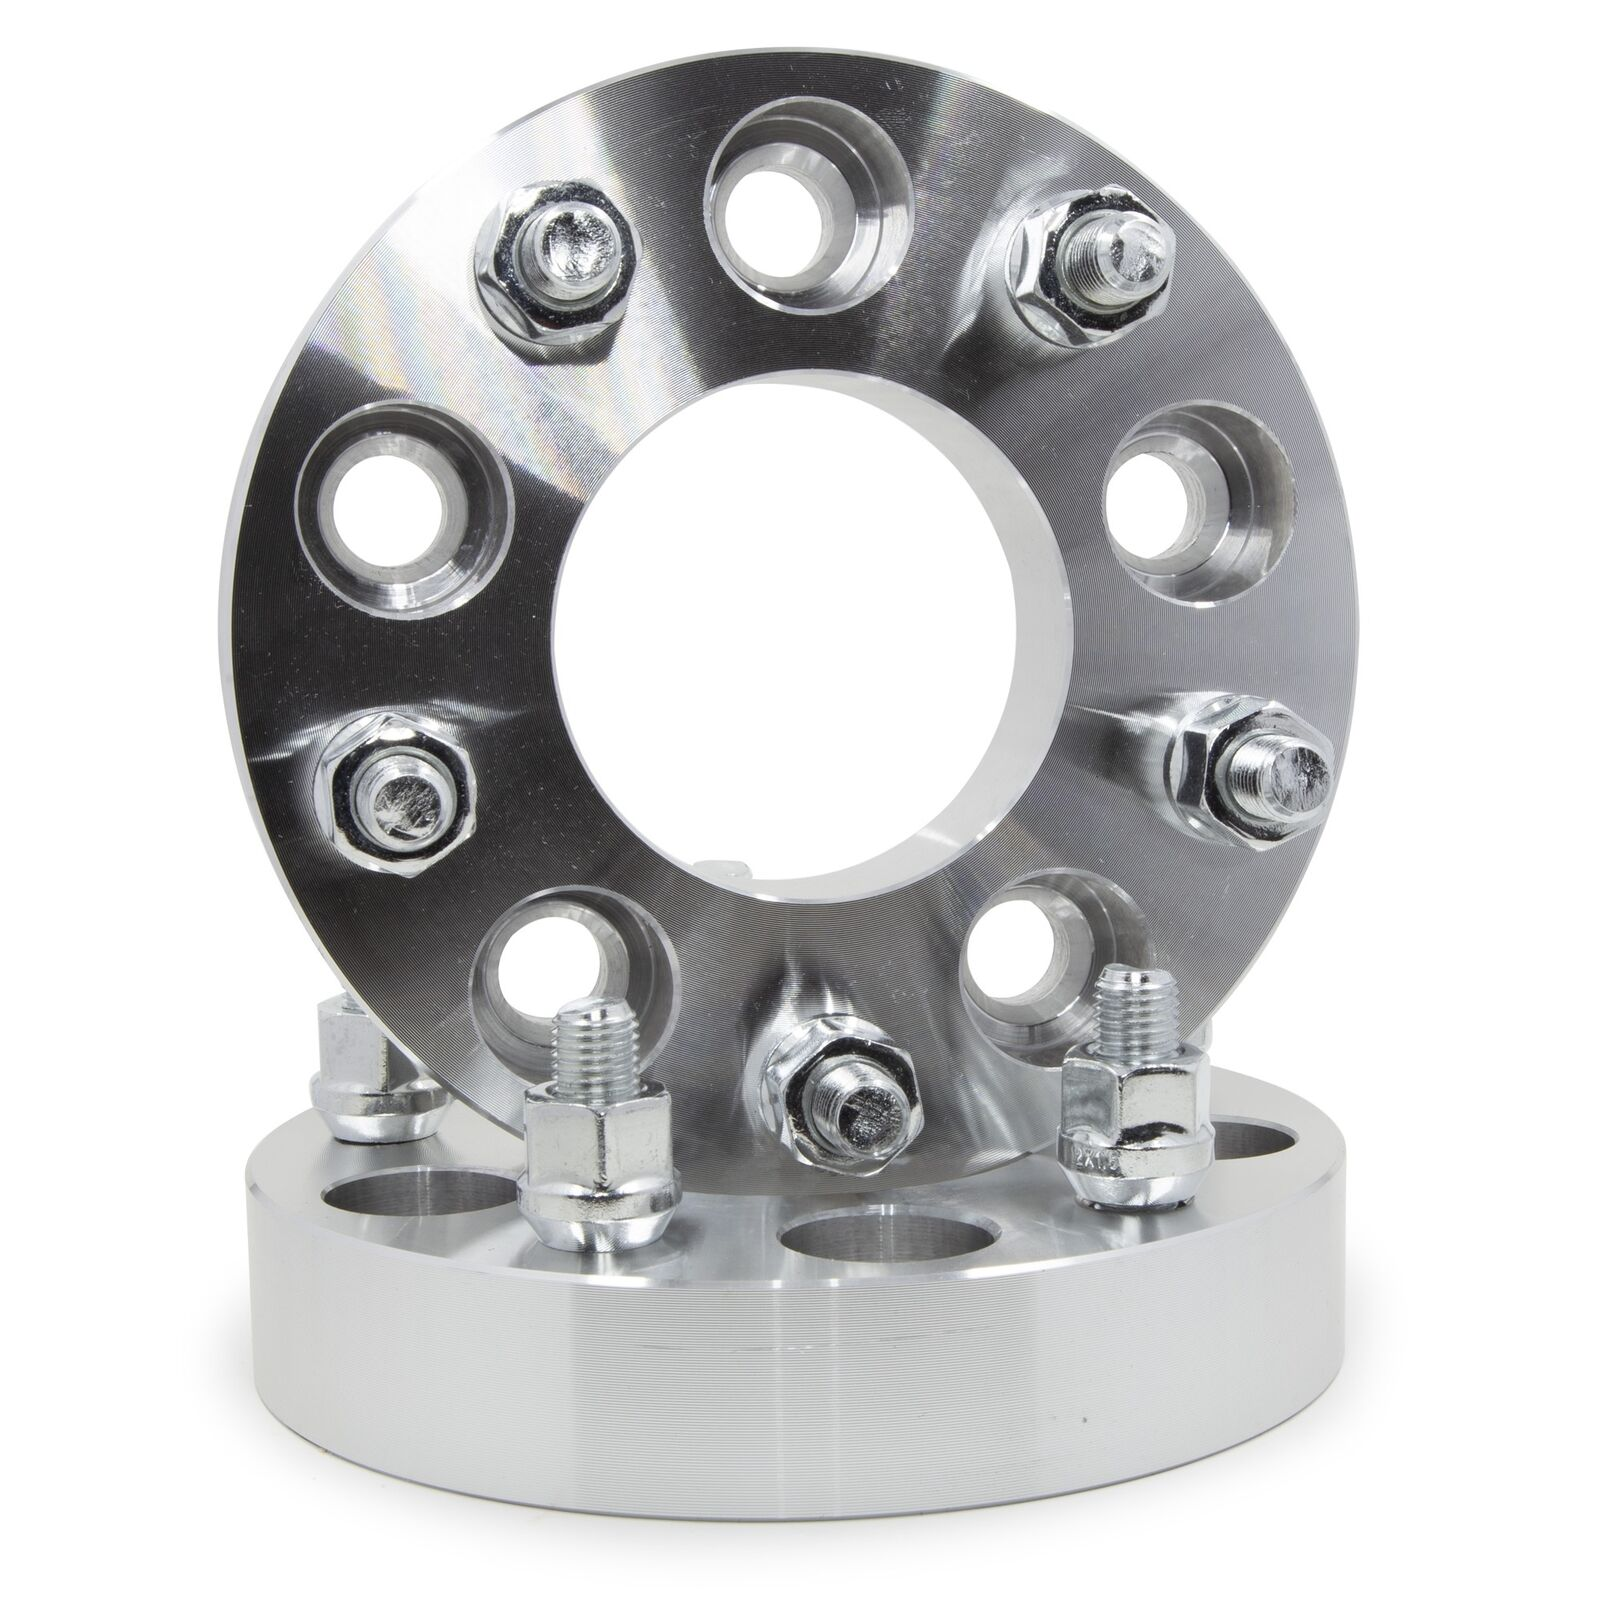 5x4.5 Wheel Spacers Adapters for Jeep Ford 5 lug studs 1 inch thick Wrangler 2pc